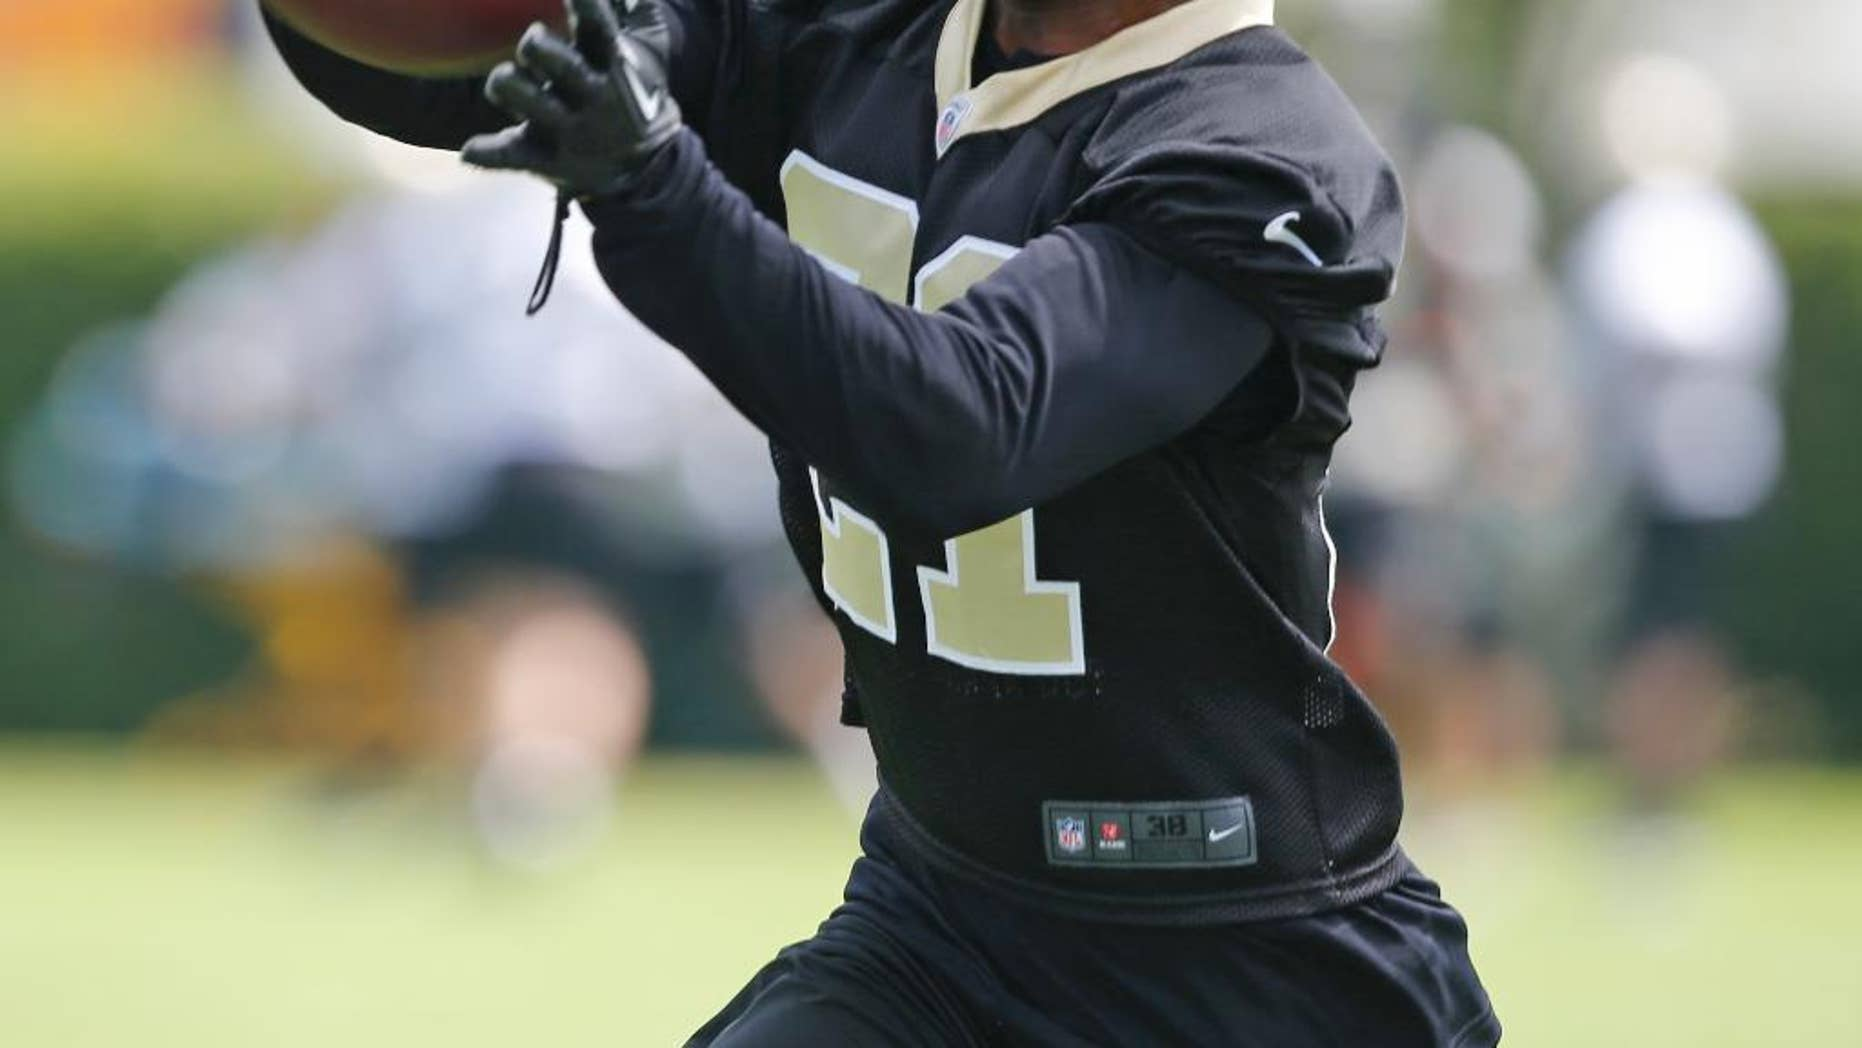 """FILE - New Orleans Saints cornerback Patrick Robinson (21) during an NFL football minicamp in Metairie, La., in this May 29, 2014 file photo. Saints cornerback Patrick Robinson is back in the starting role he was drafted to play, and looking a lot more comfortable this time.  """"My confidence is a lot better than it was the last couple years,"""" Robinson said after Thursday's practice Dec. 4, 2014. """"I think that makes a huge difference."""" (AP Photo/Bill Haber, File)"""